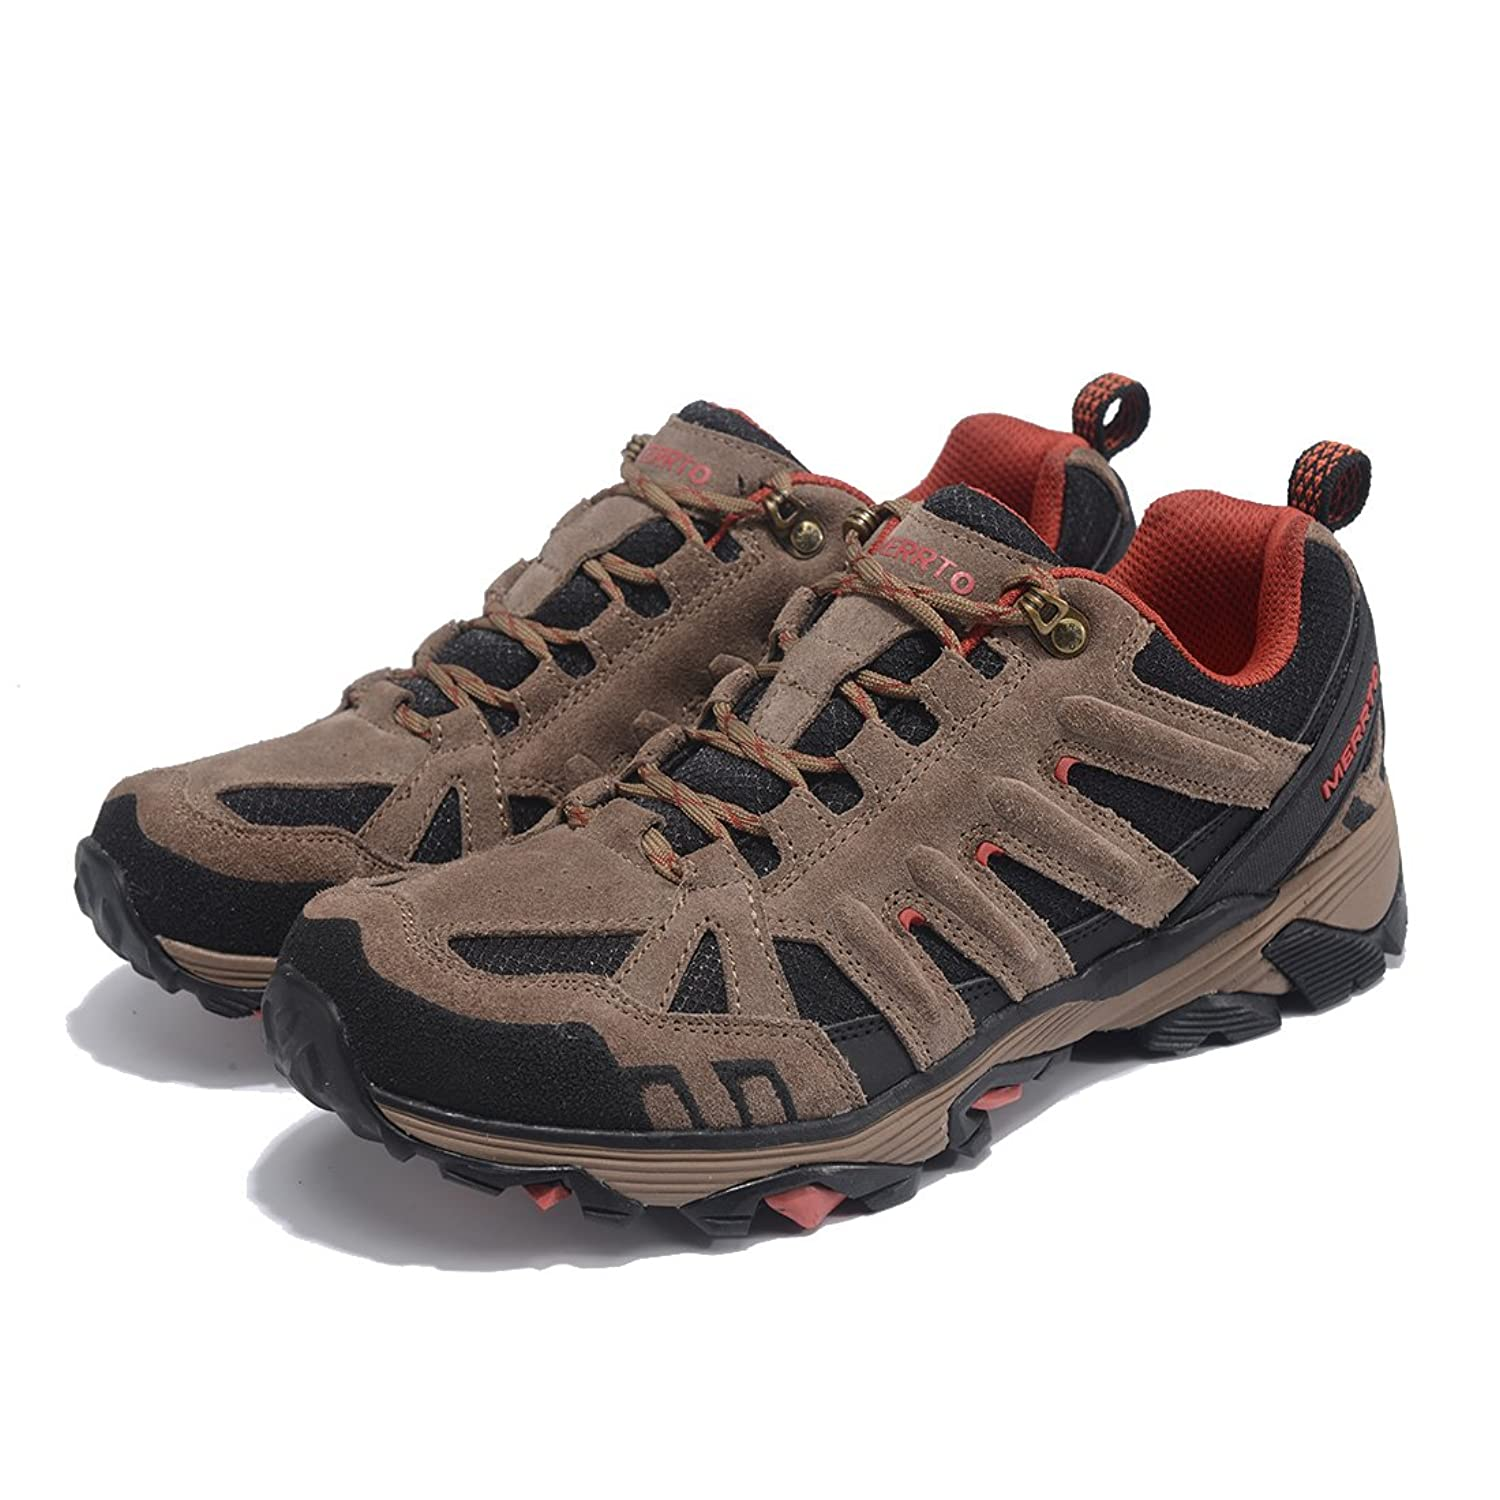 Men's Outdoor Suede Leather Hiking Shoes (8 Khaki)